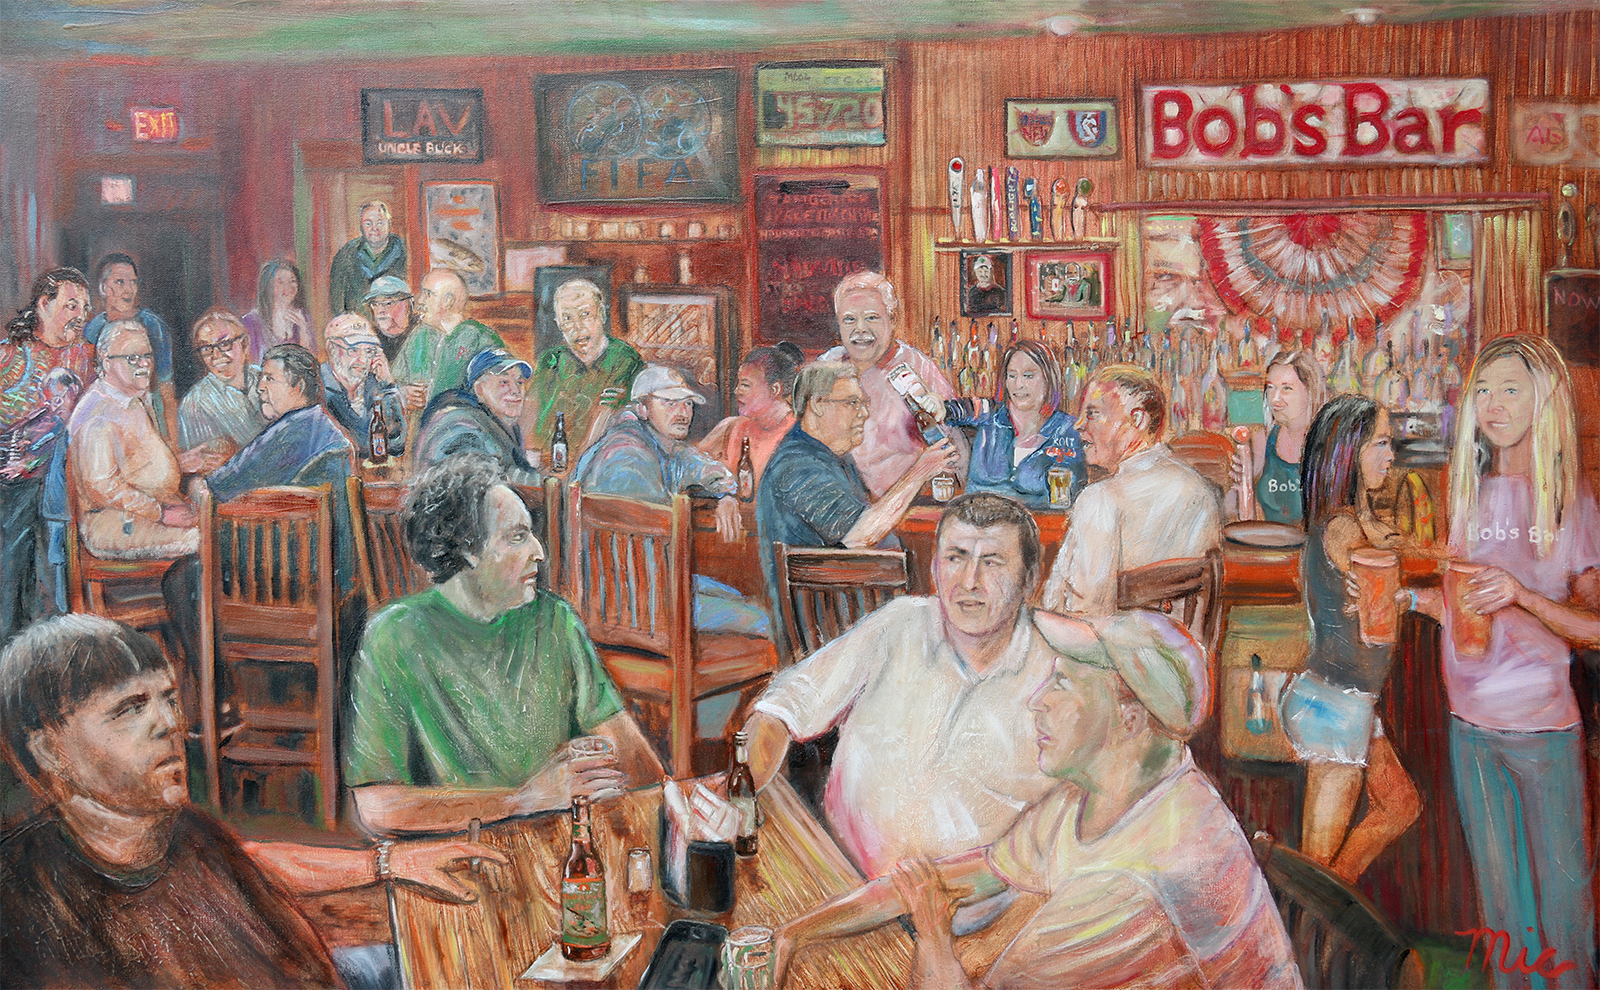 """Bobs Bar"" Grand Rapids Mi. - Private Collection Bob QuayGiclee Limited Edition and canvas prints are available. Please visit the prints gallery."